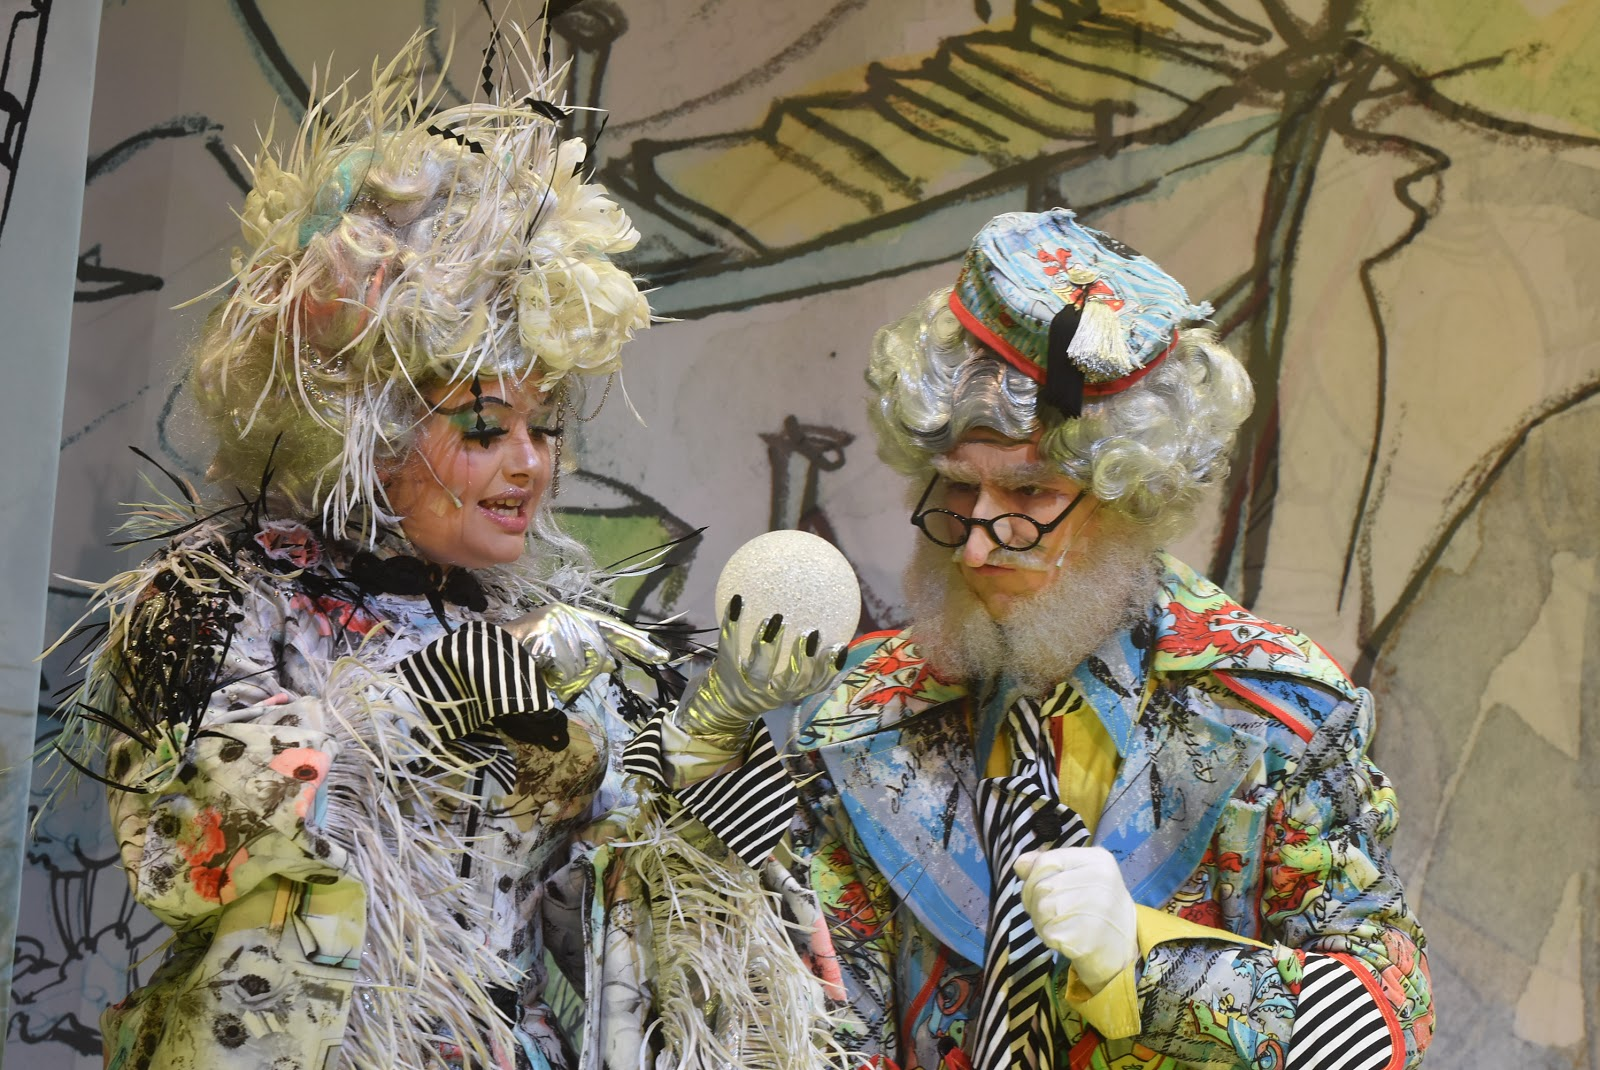 Natasha Haws and Cal Halbert in The Customs House pantomime